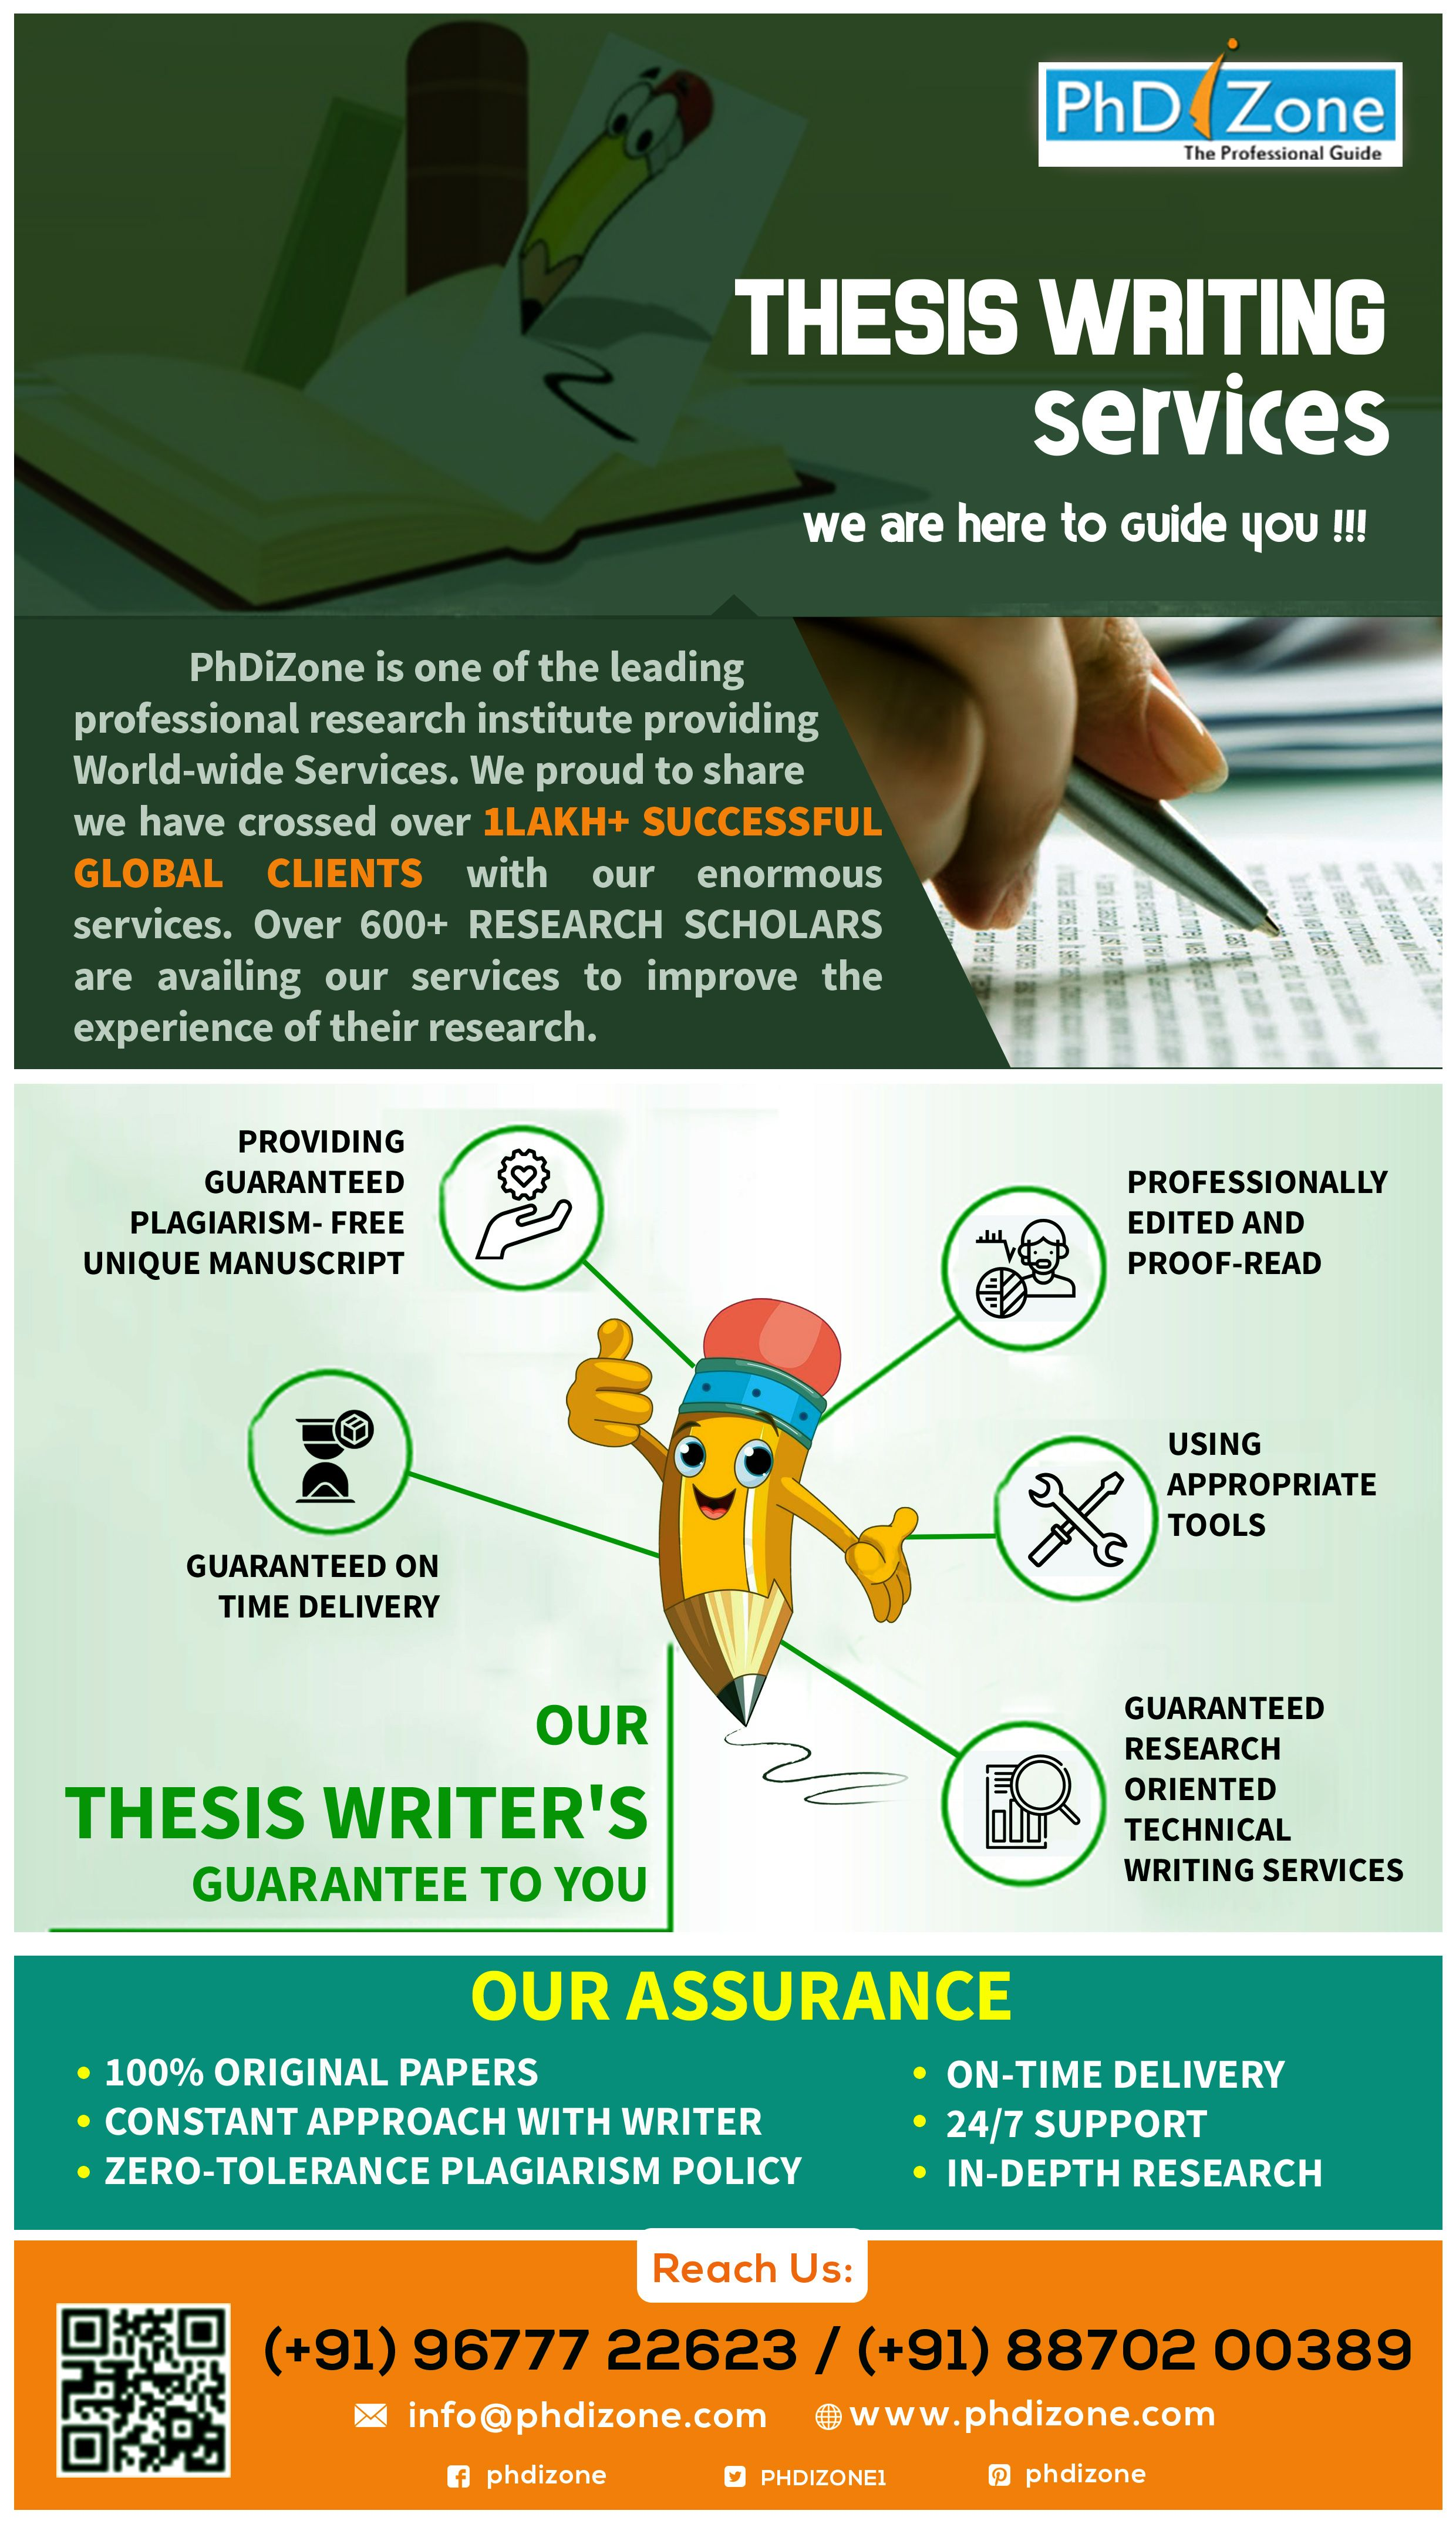 Thesi Writing Service Professional Dissertation Expert Writer Research Scholar Services